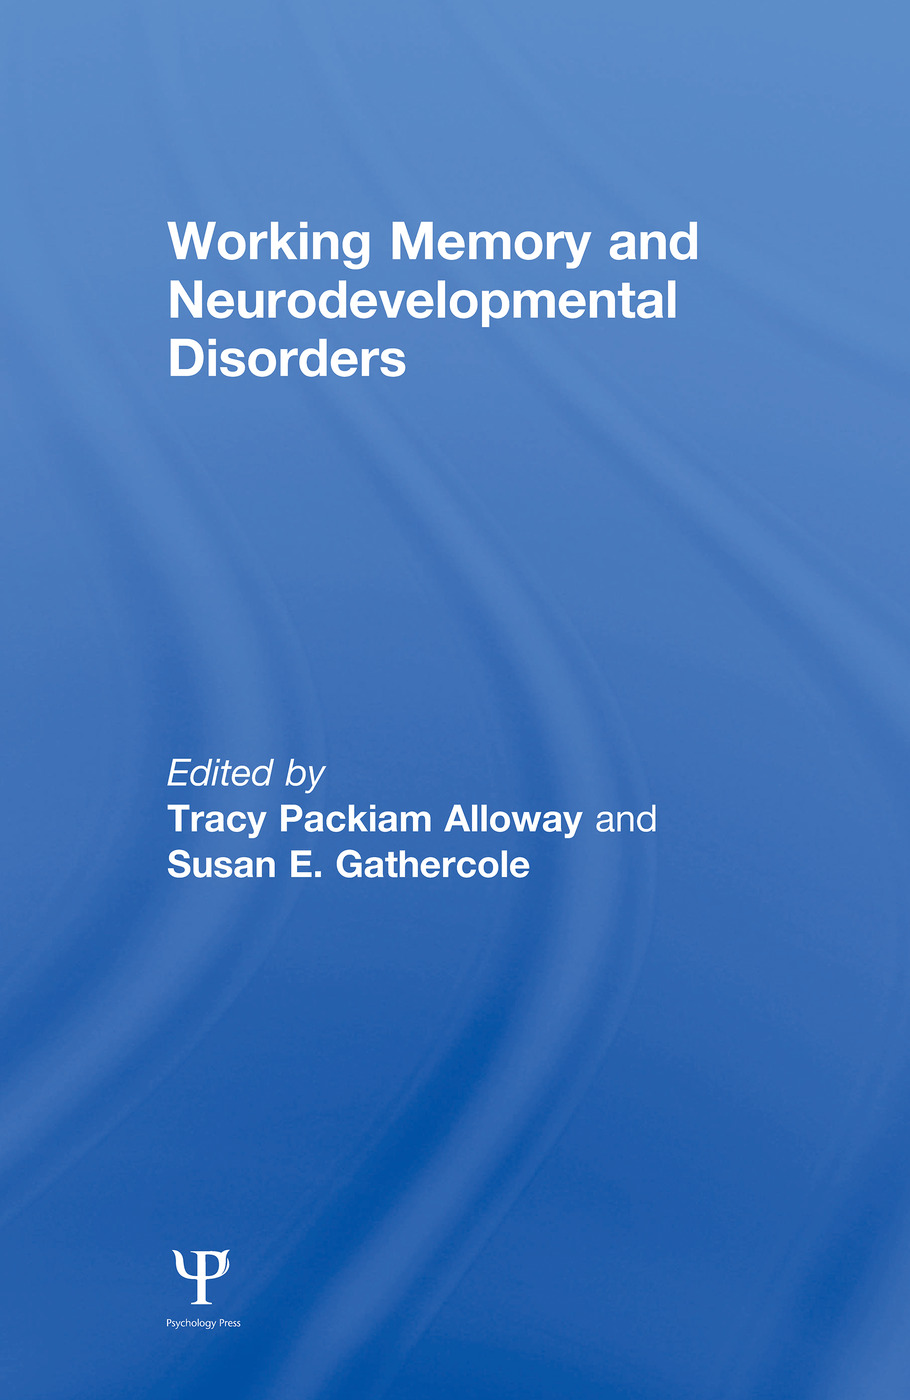 Working Memory and Neurodevelopmental Disorders (e-Book) book cover